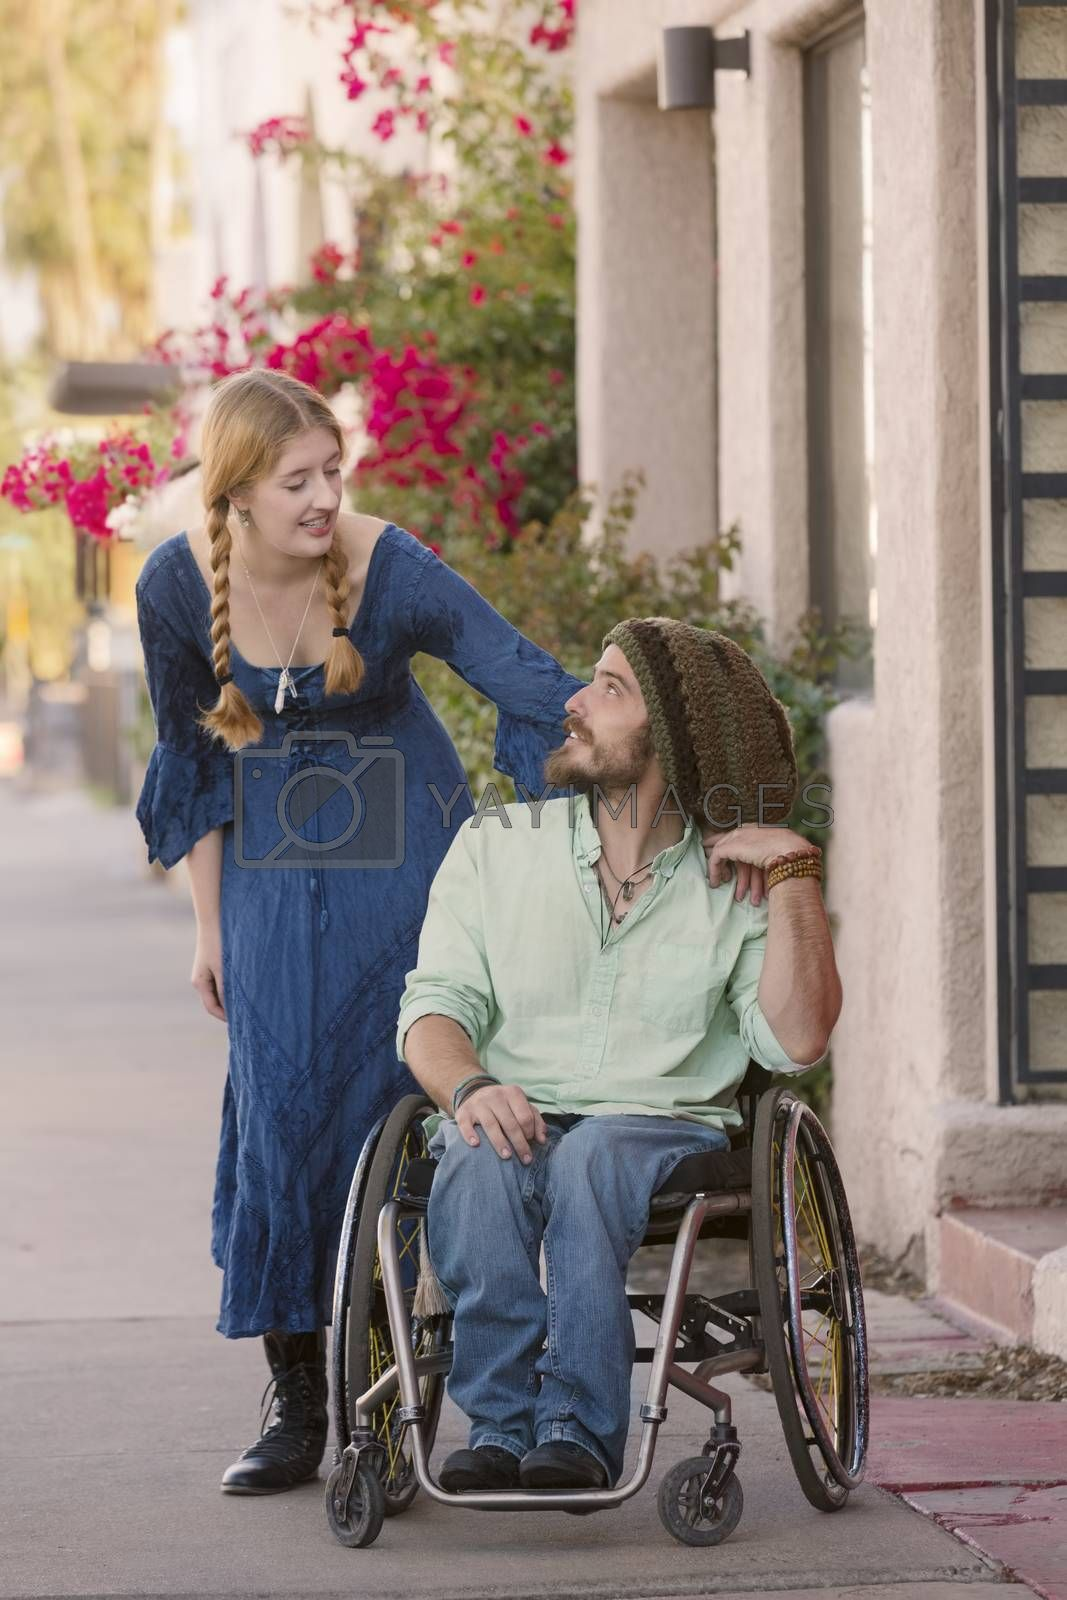 Woman talking with friend in wheelchair on sidewalk